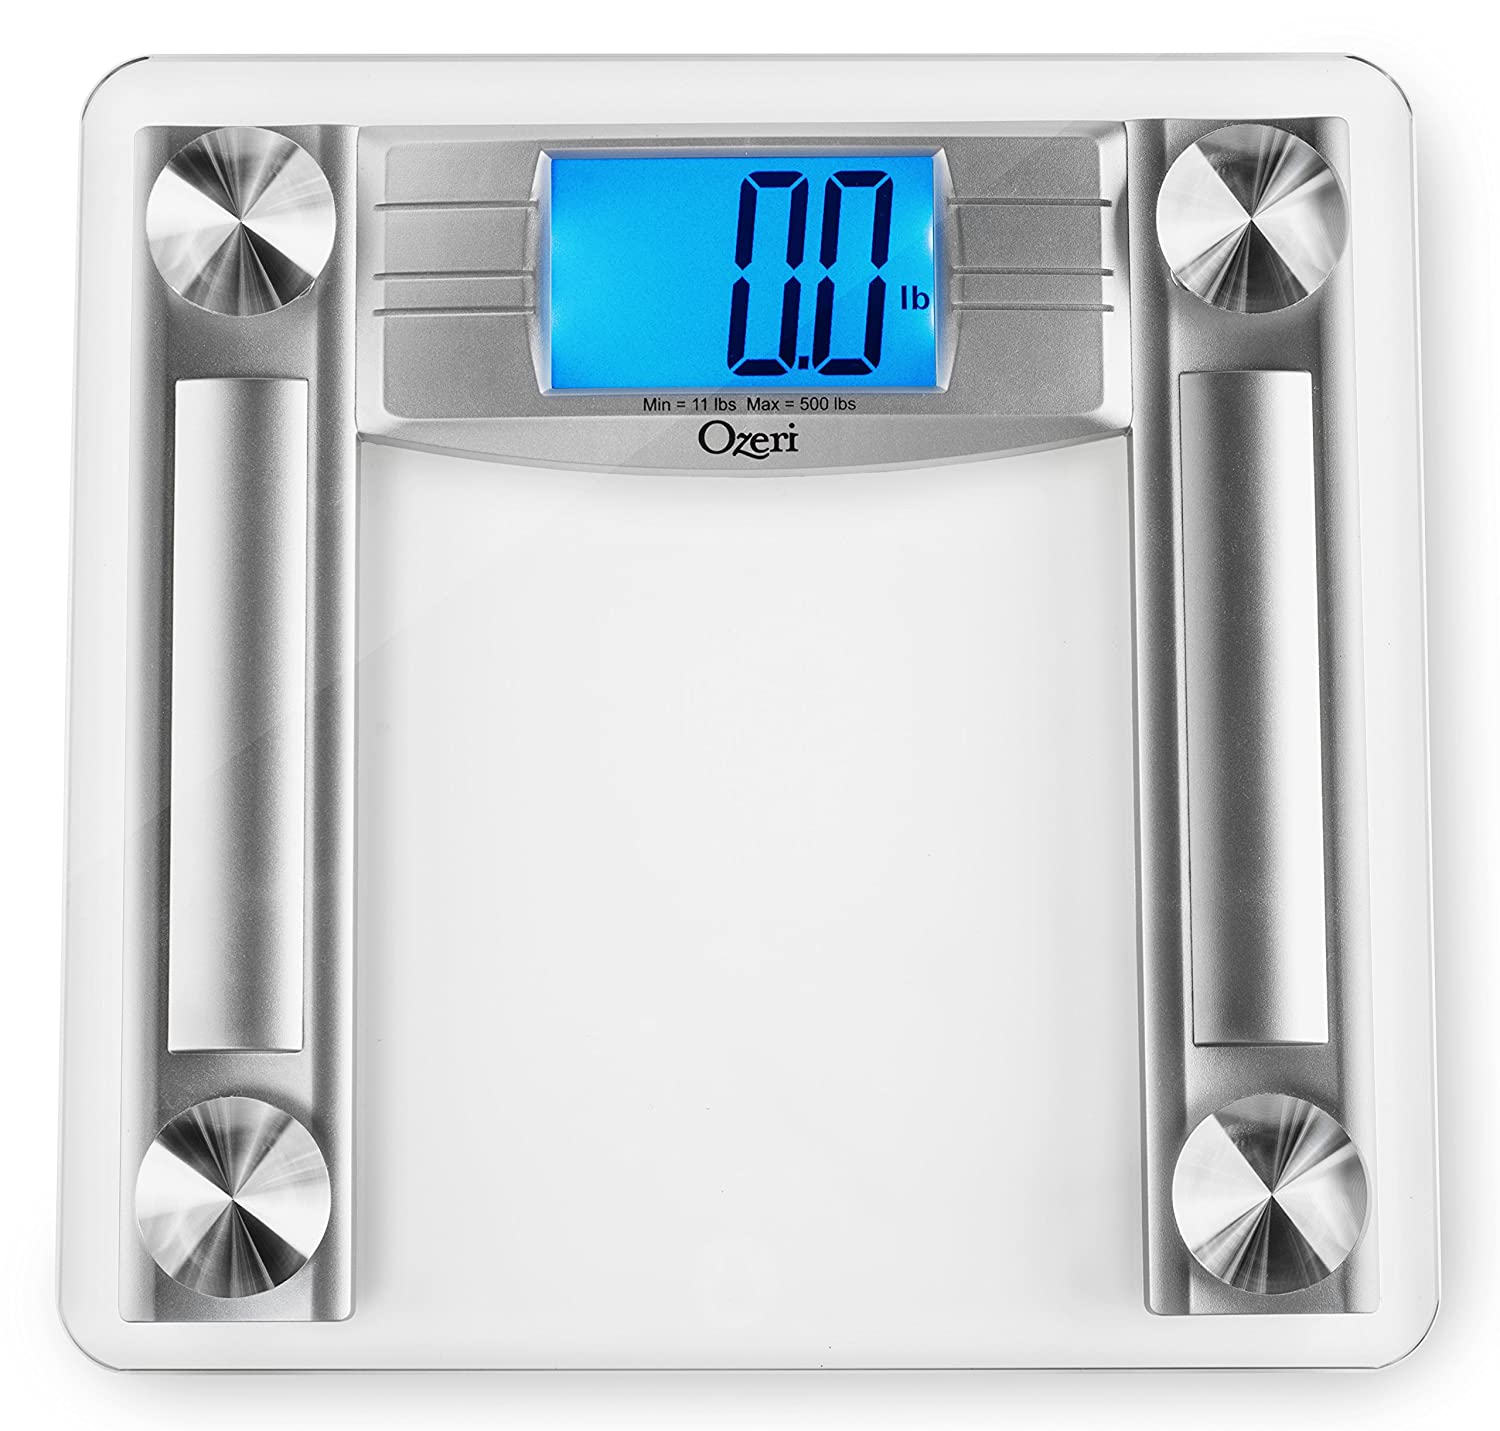 Ozeri ProMax 560 lbs 255 kg Bath Scale, with 0.1 lbs 0.05 kg Sensor Technology, and Body Tape Measure Fat Caliper